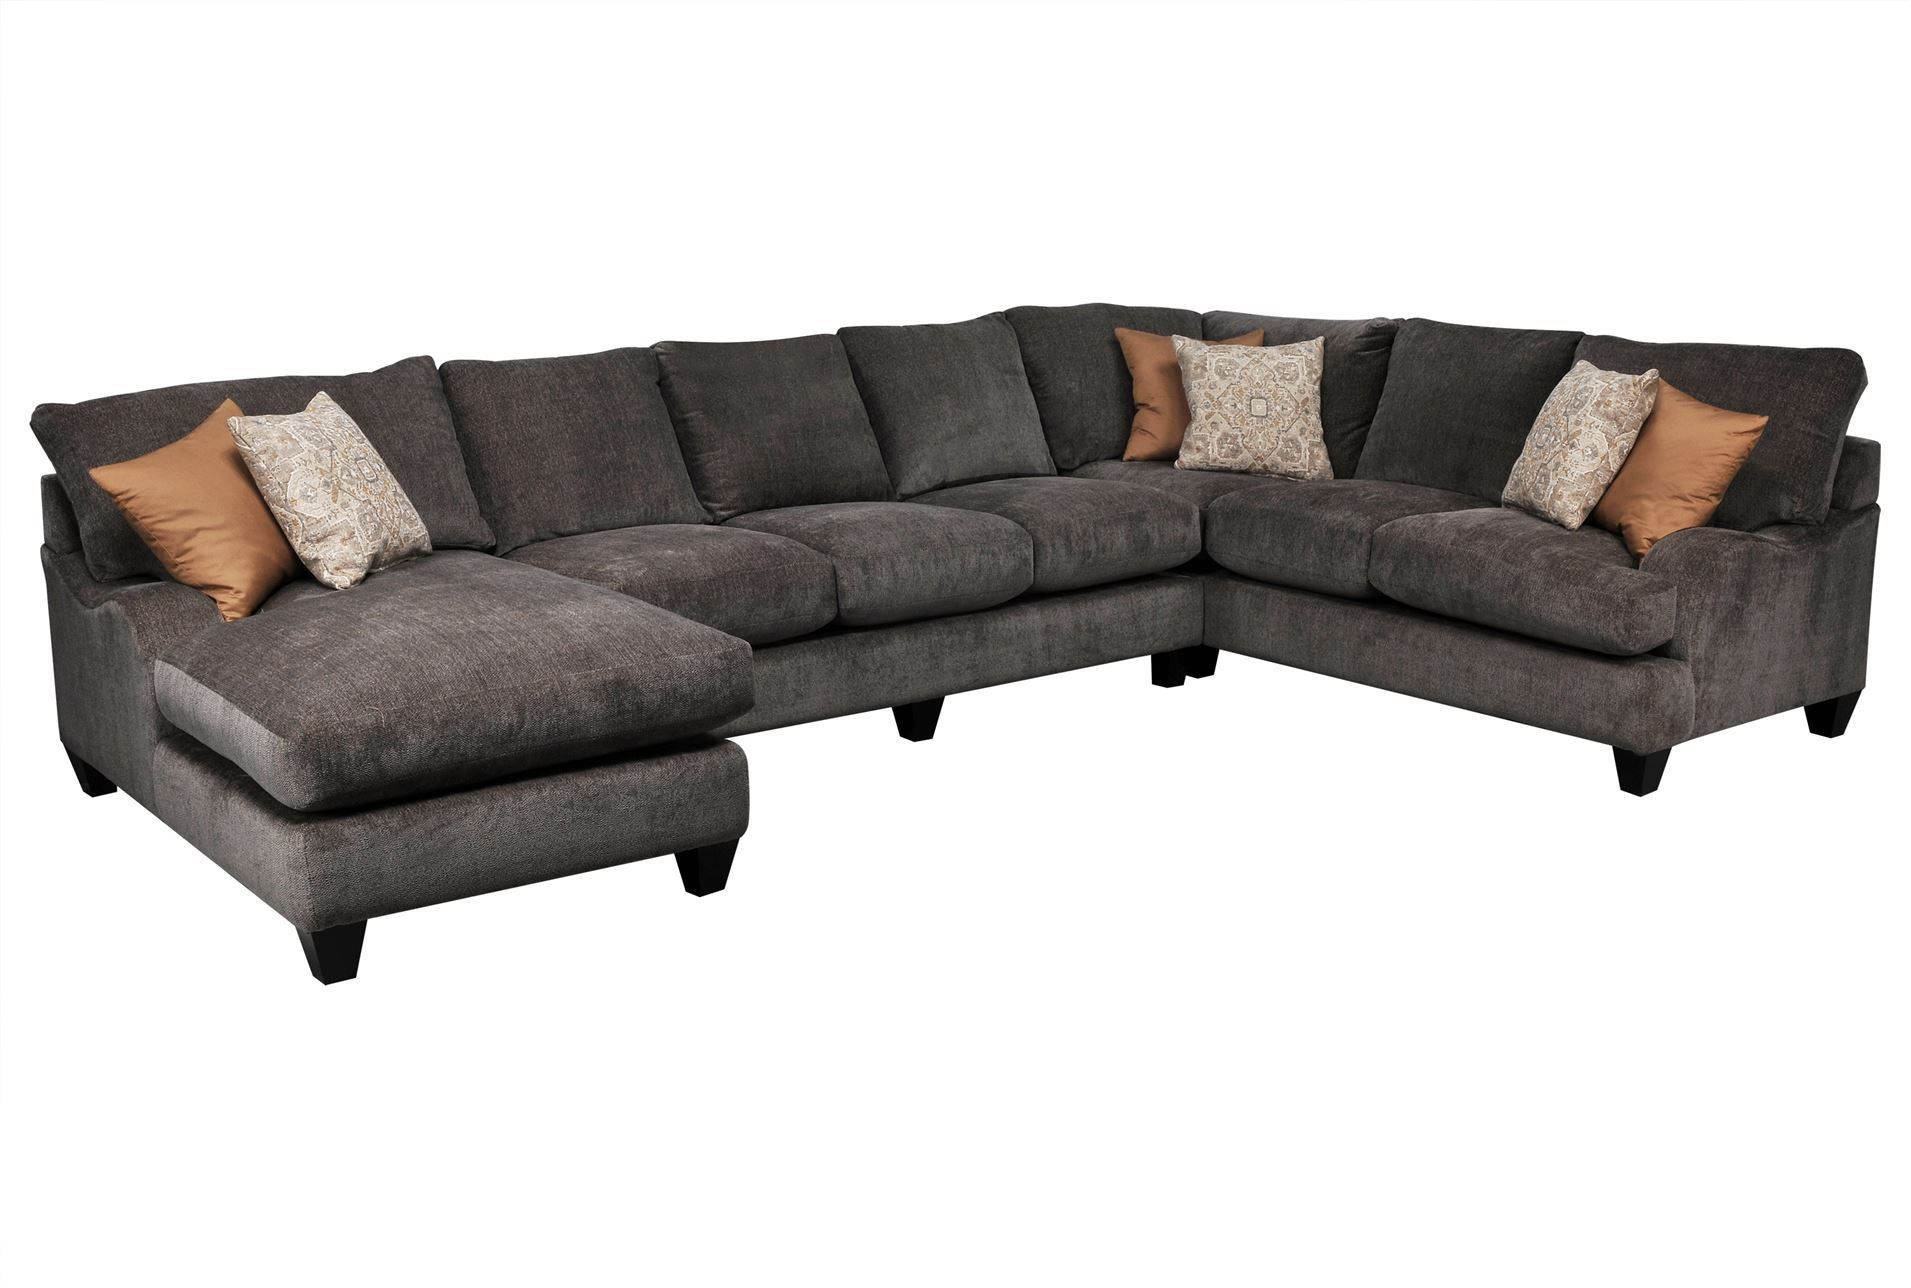 Urban Home Devonshire Sofa Pryce 3 Piece Sectional W Laf Chaise Signature 2 Chaise